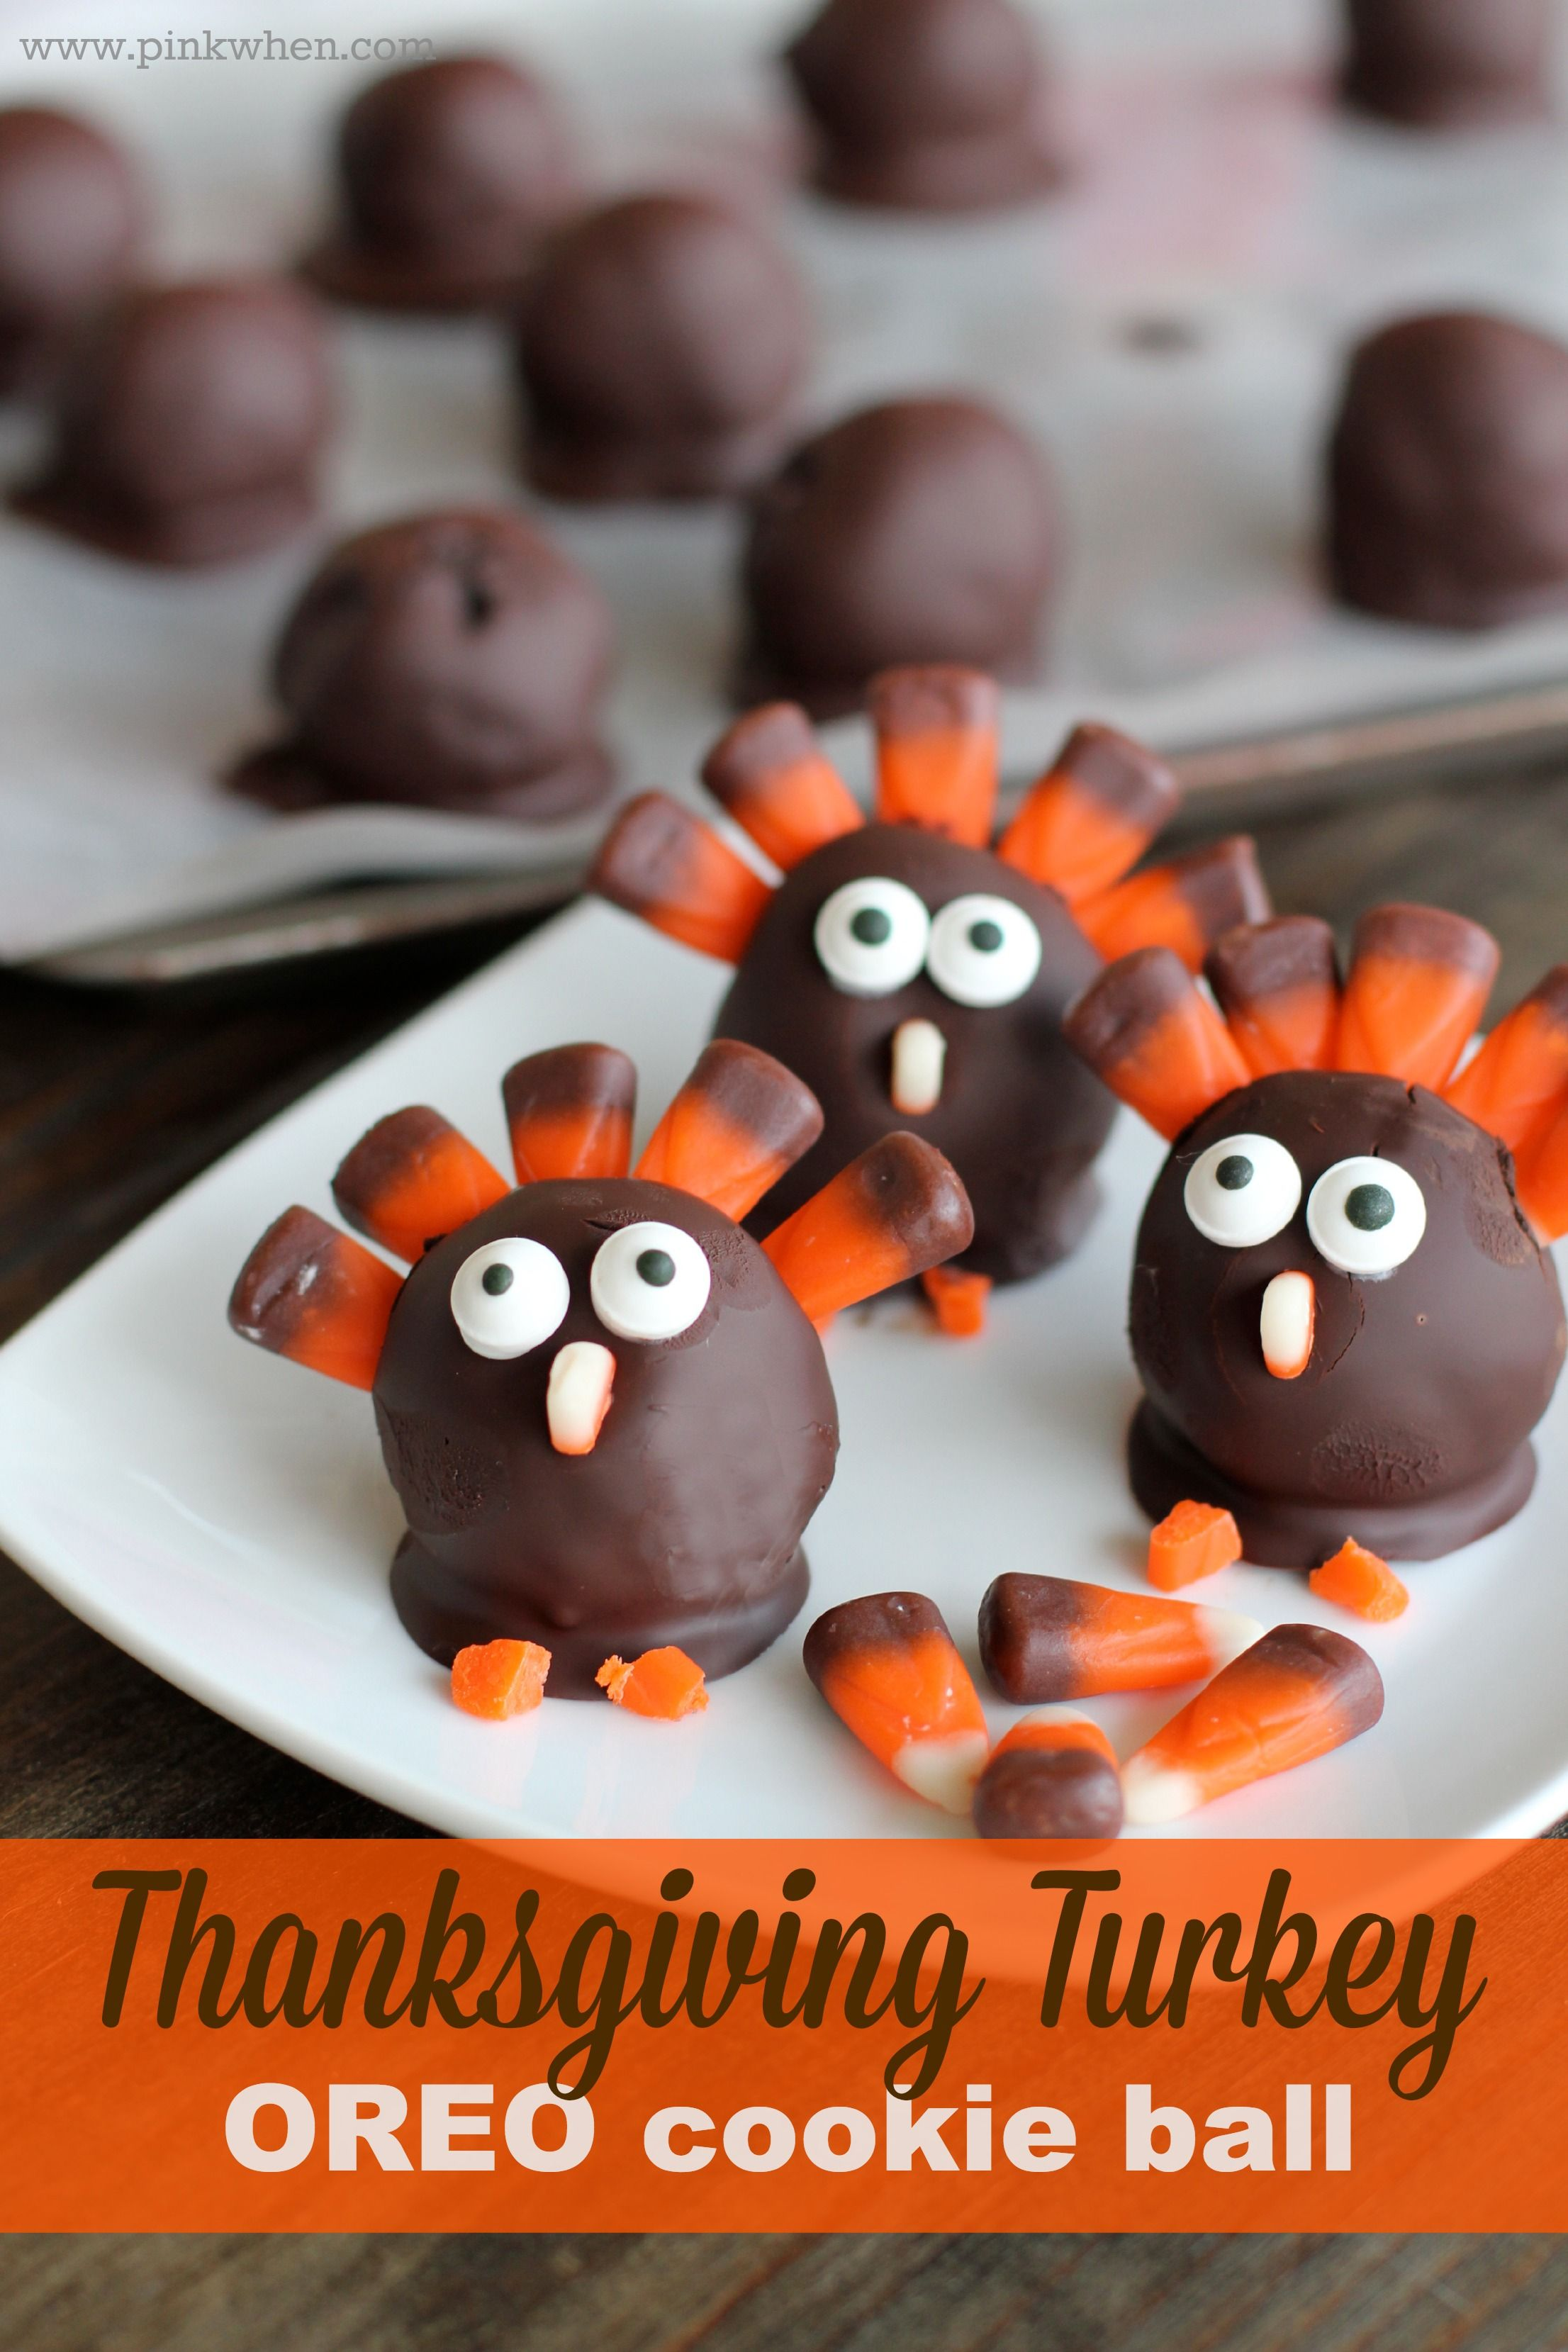 Make these super cute and easy OREO Cookie Balls - Thanksgiving Turkey #OREOCookieBall #CollectiveBias #shop